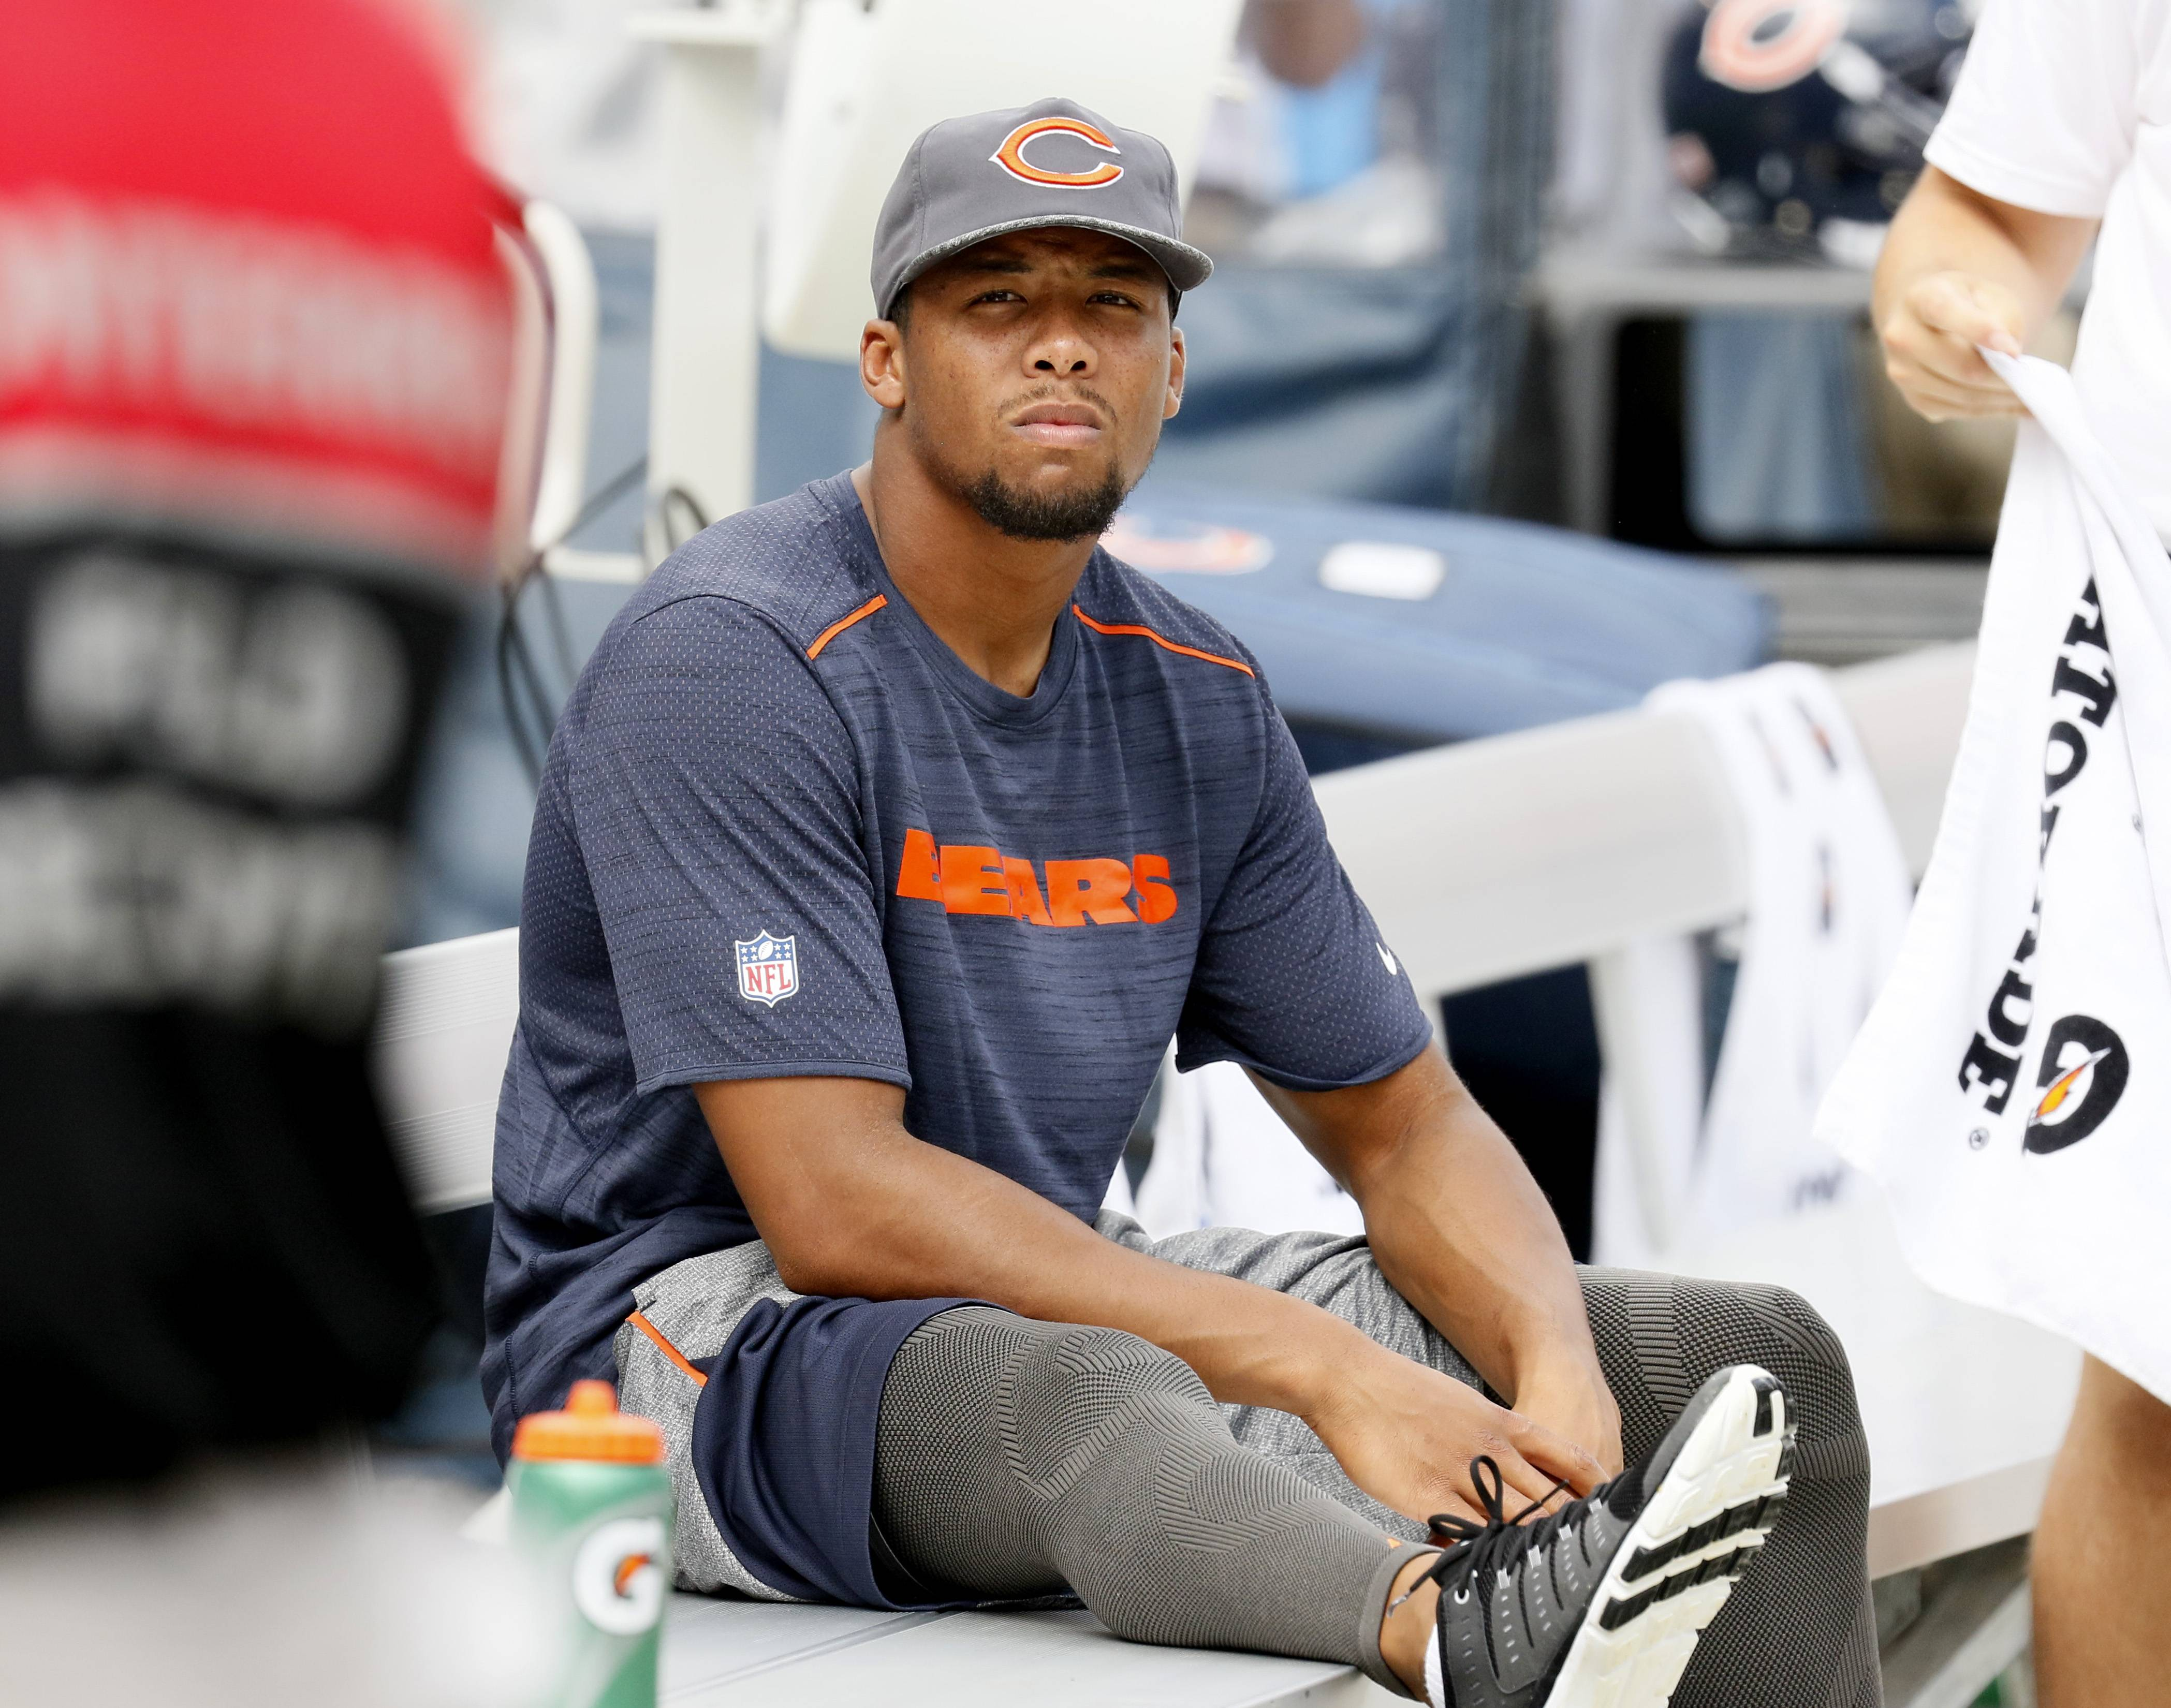 Daniel White/dwhite@dailyherald.com Chicago Bears Kyle Fuller sits on the bench against the Kansas City Chiefs during a preseason game, Saturday, August 27, 2016 at Soldier Field.